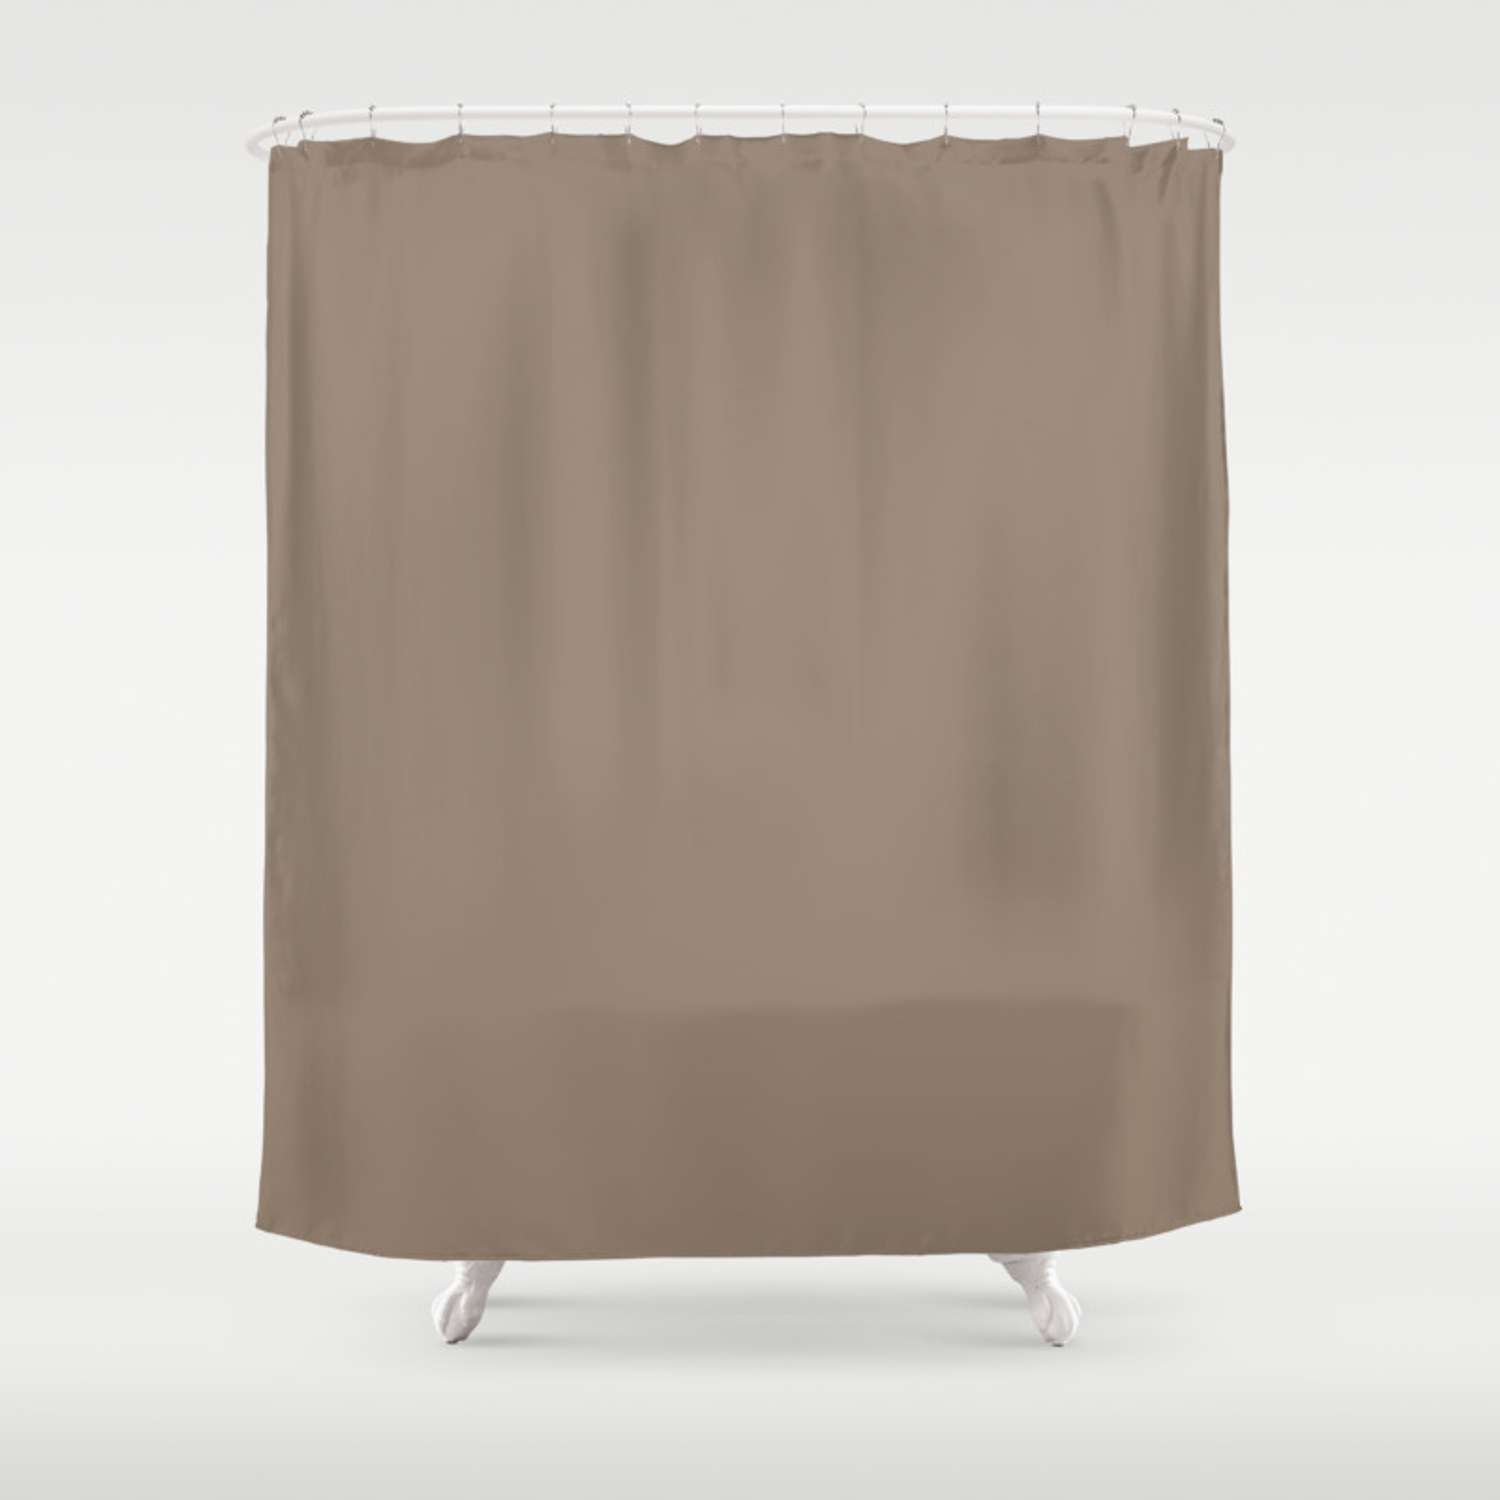 Baby Blue Ocean Sandy Brown Coordinating Solid Shower Curtain